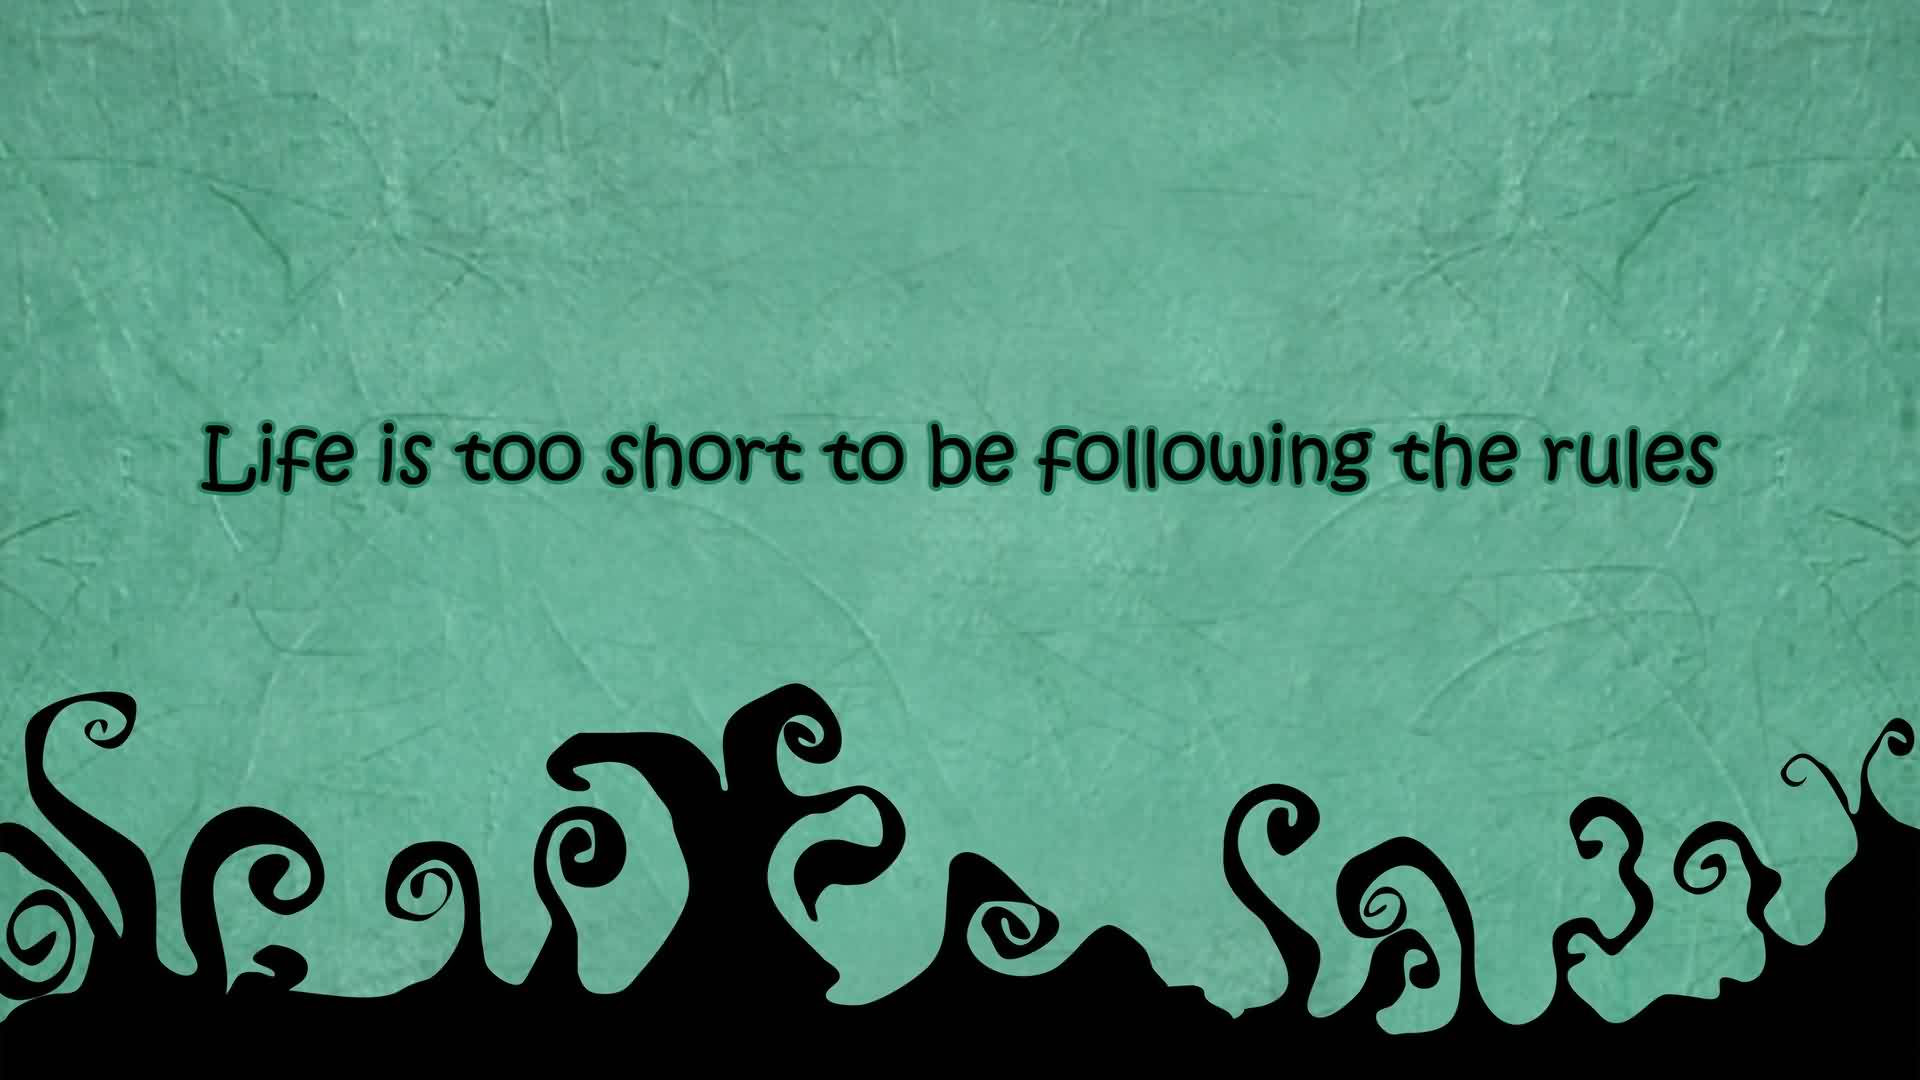 New Life Quotes Images Life Is Too Short To Follow Rules